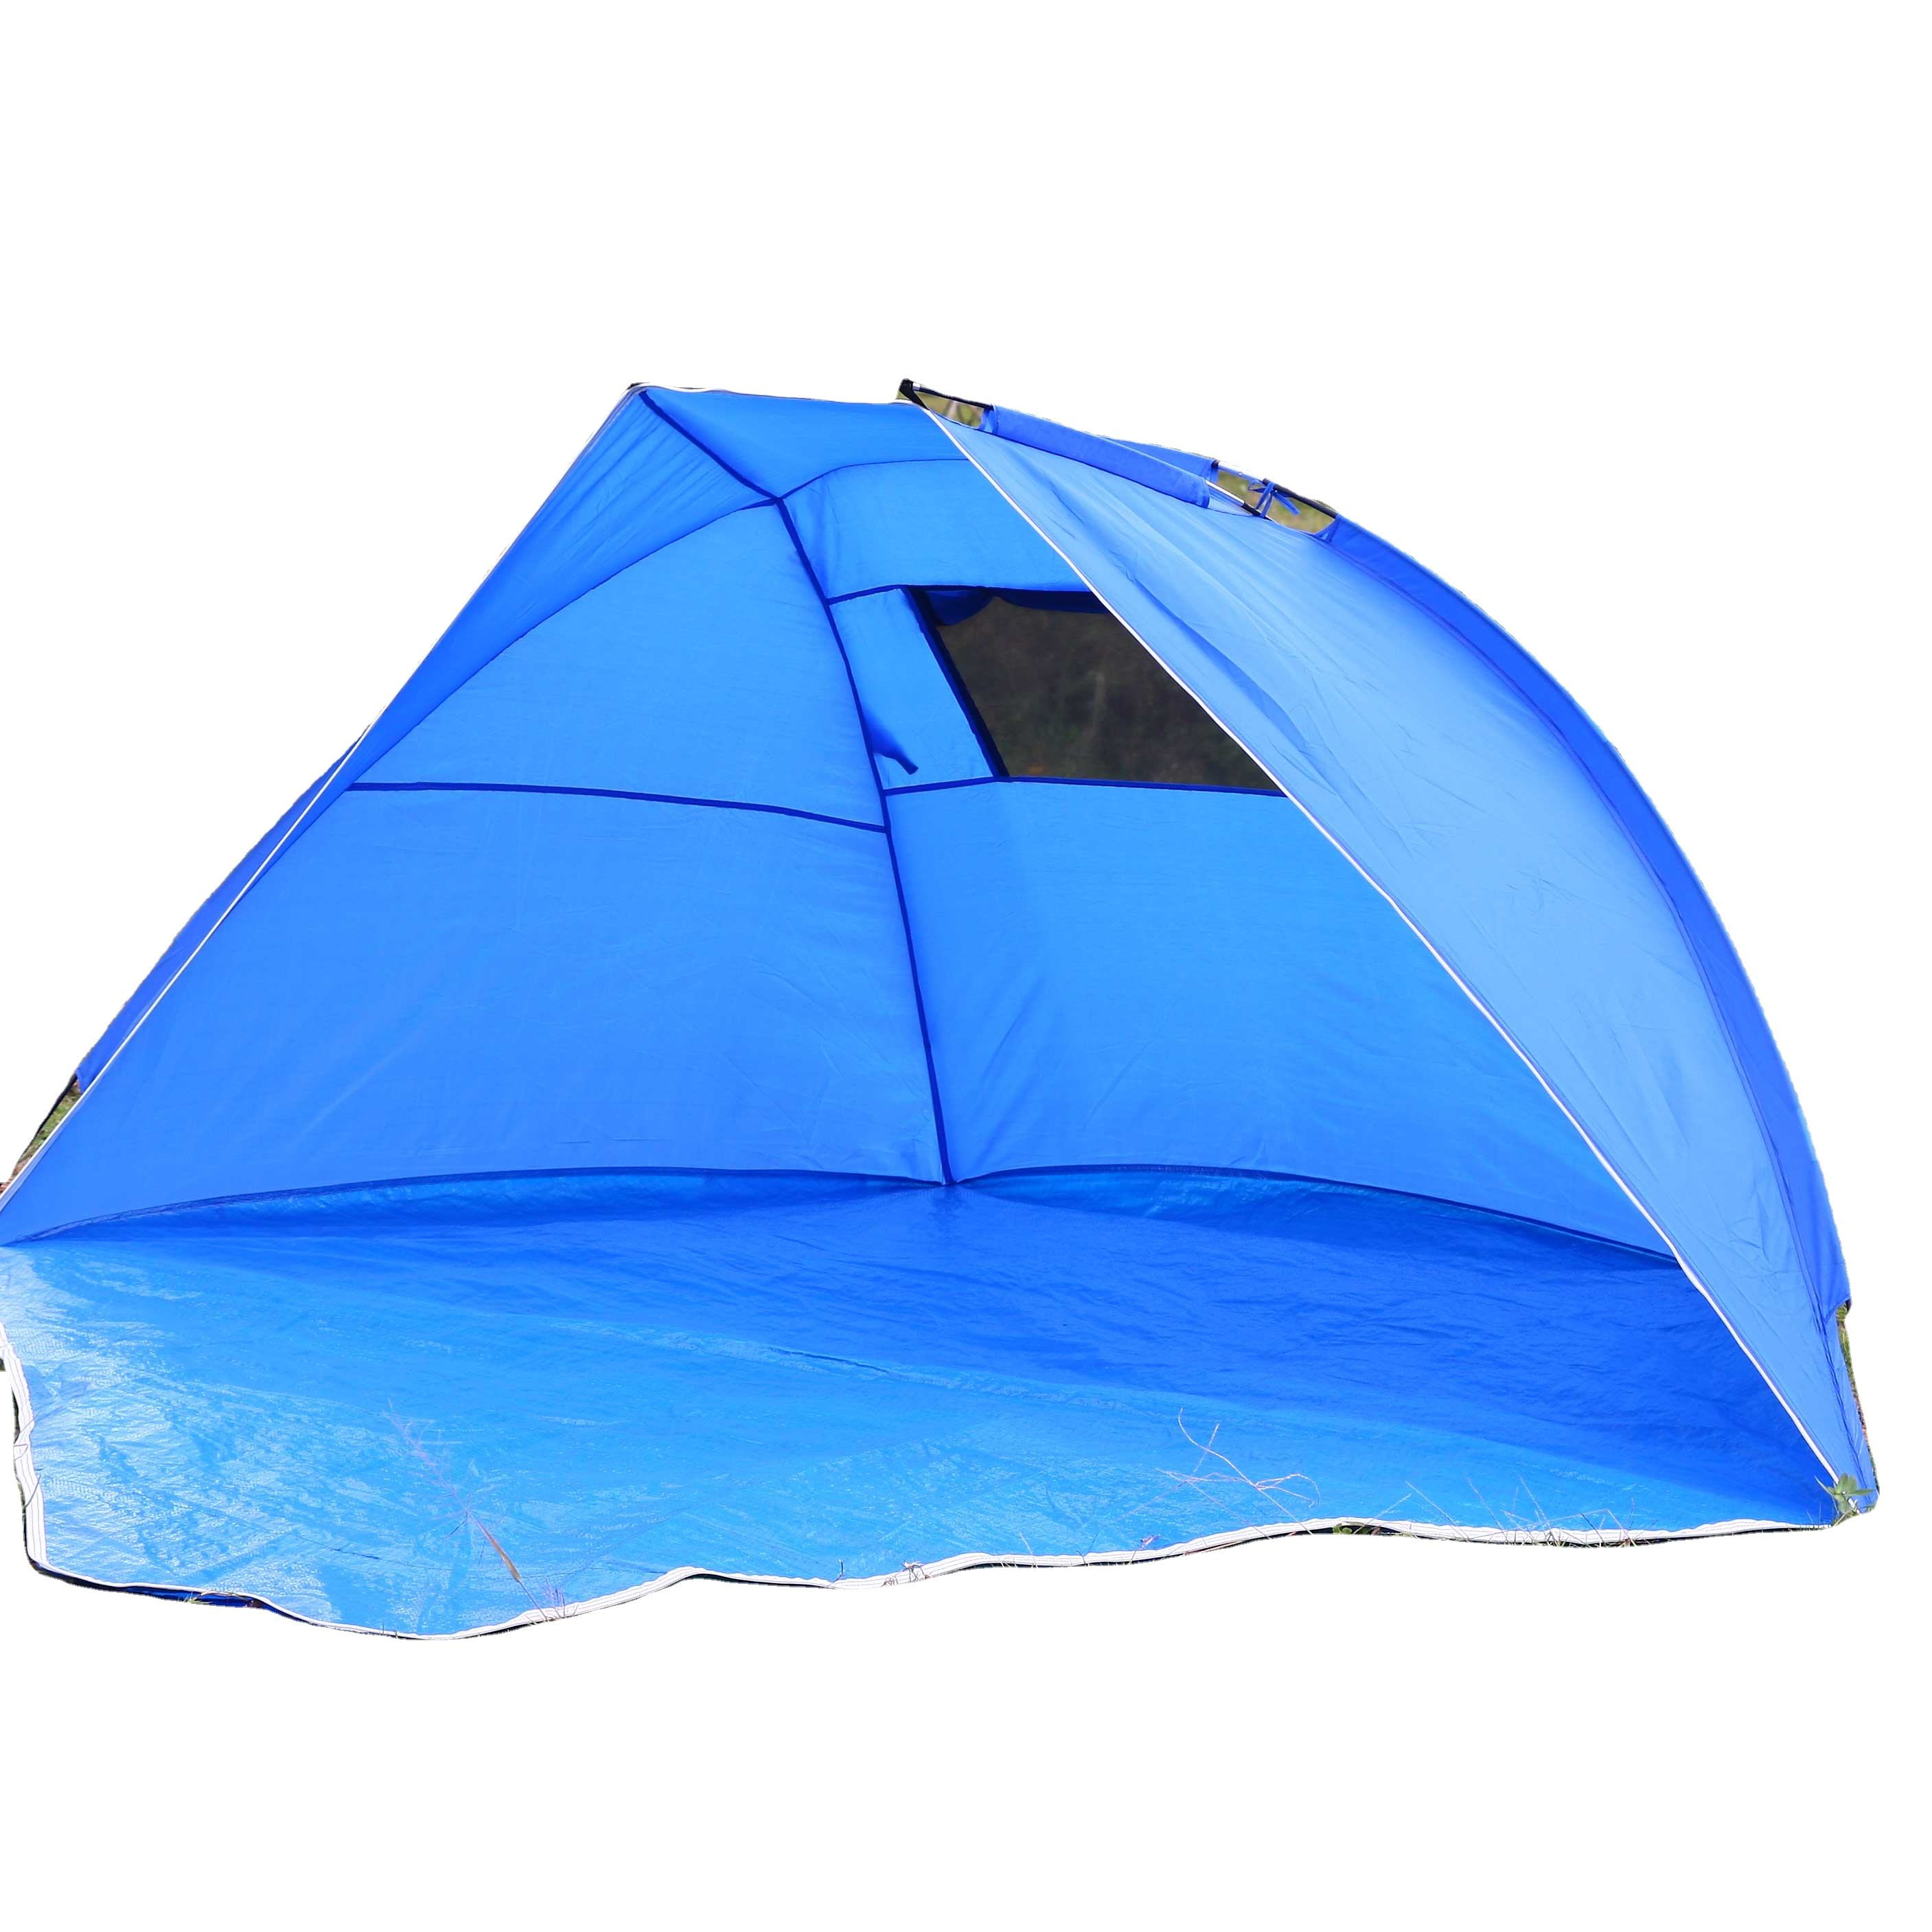 3 person outdoor camping beach shelter tent